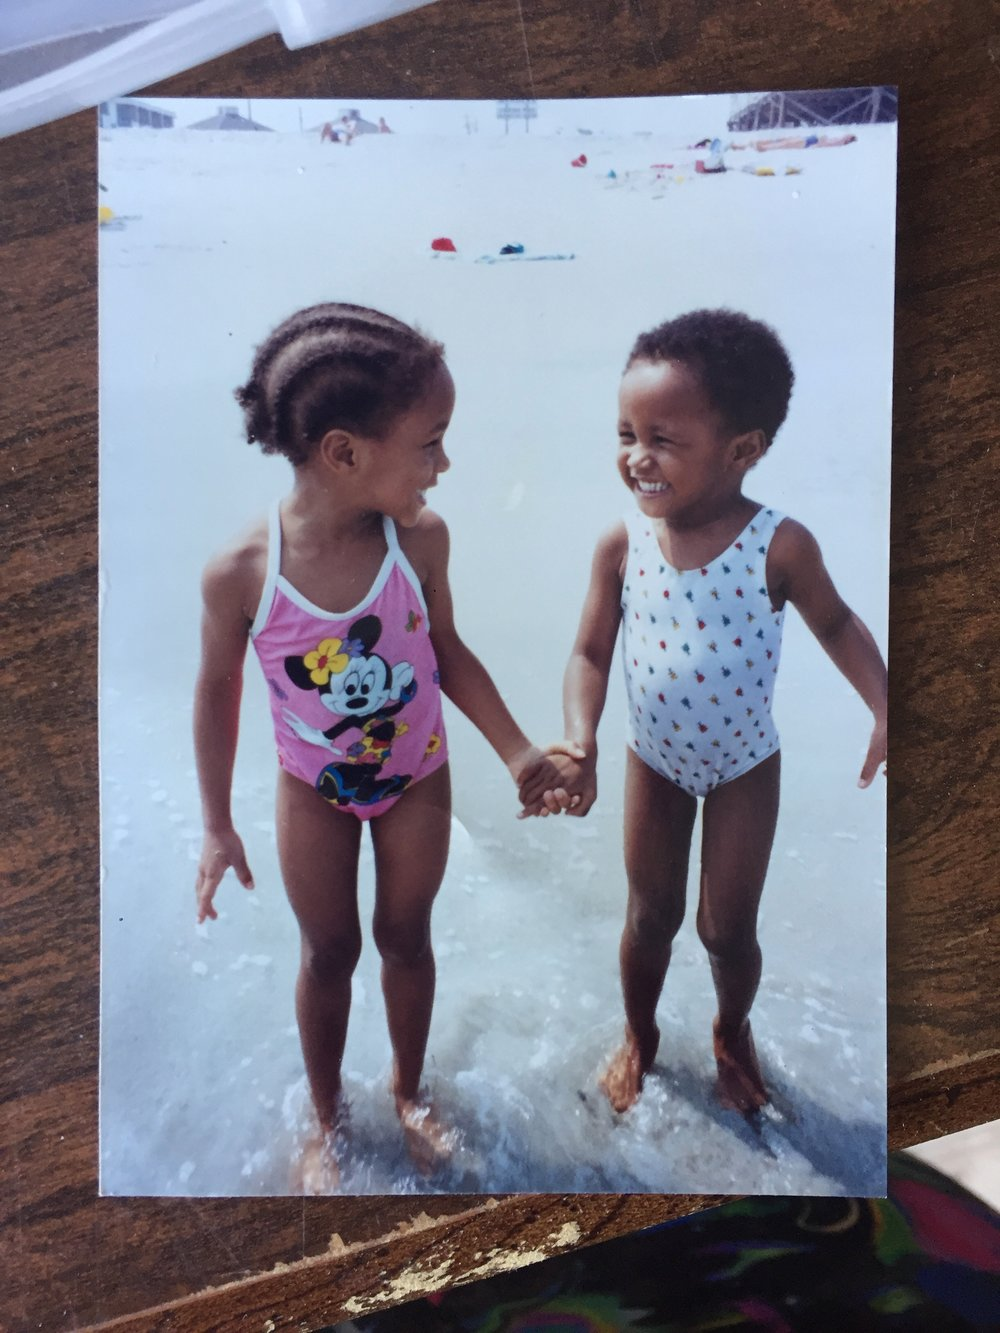 Chemin and Jamila Reddy (Ages 4 and 3), Myrtle Beach